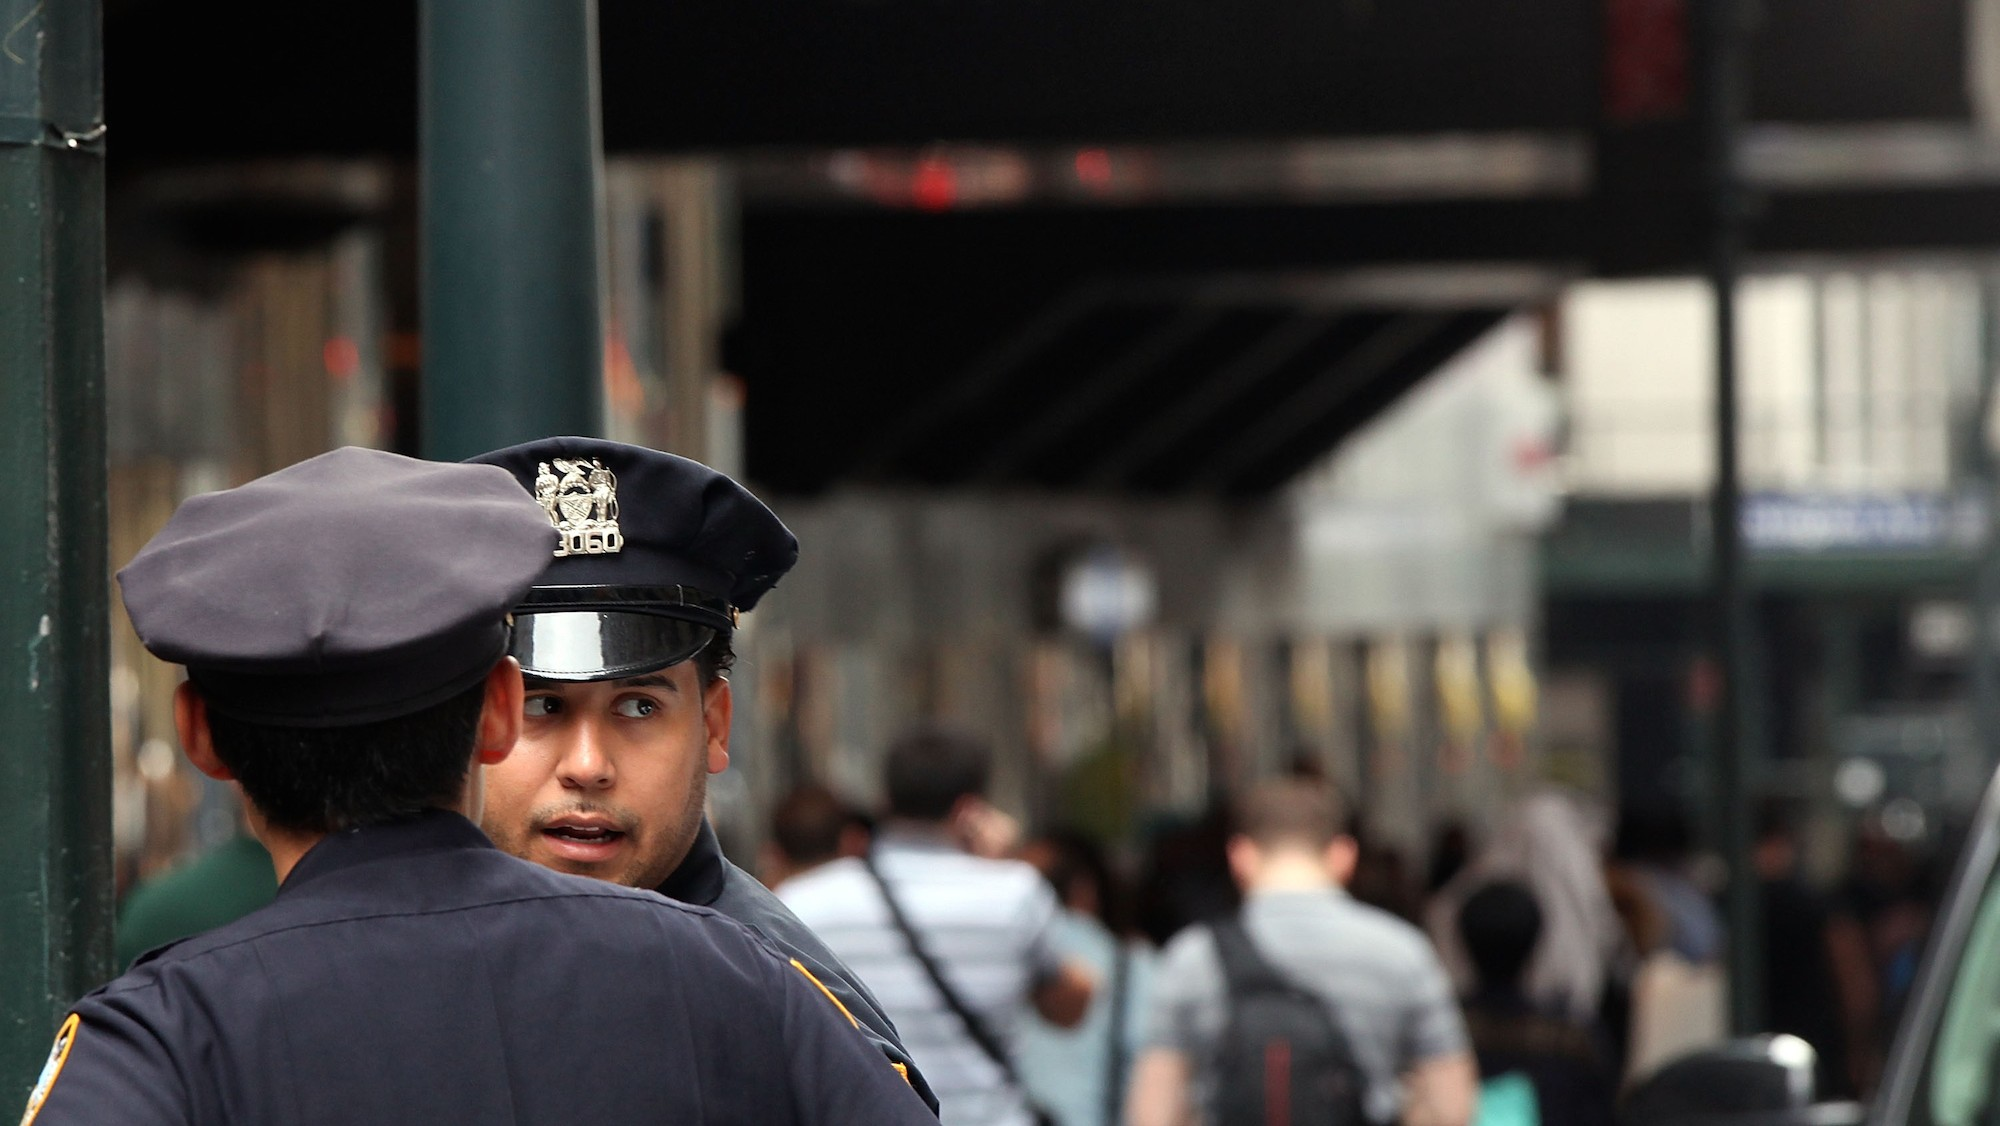 New Guidebooks Tell US Cops How to 'Build Trust in a Diverse Nation'